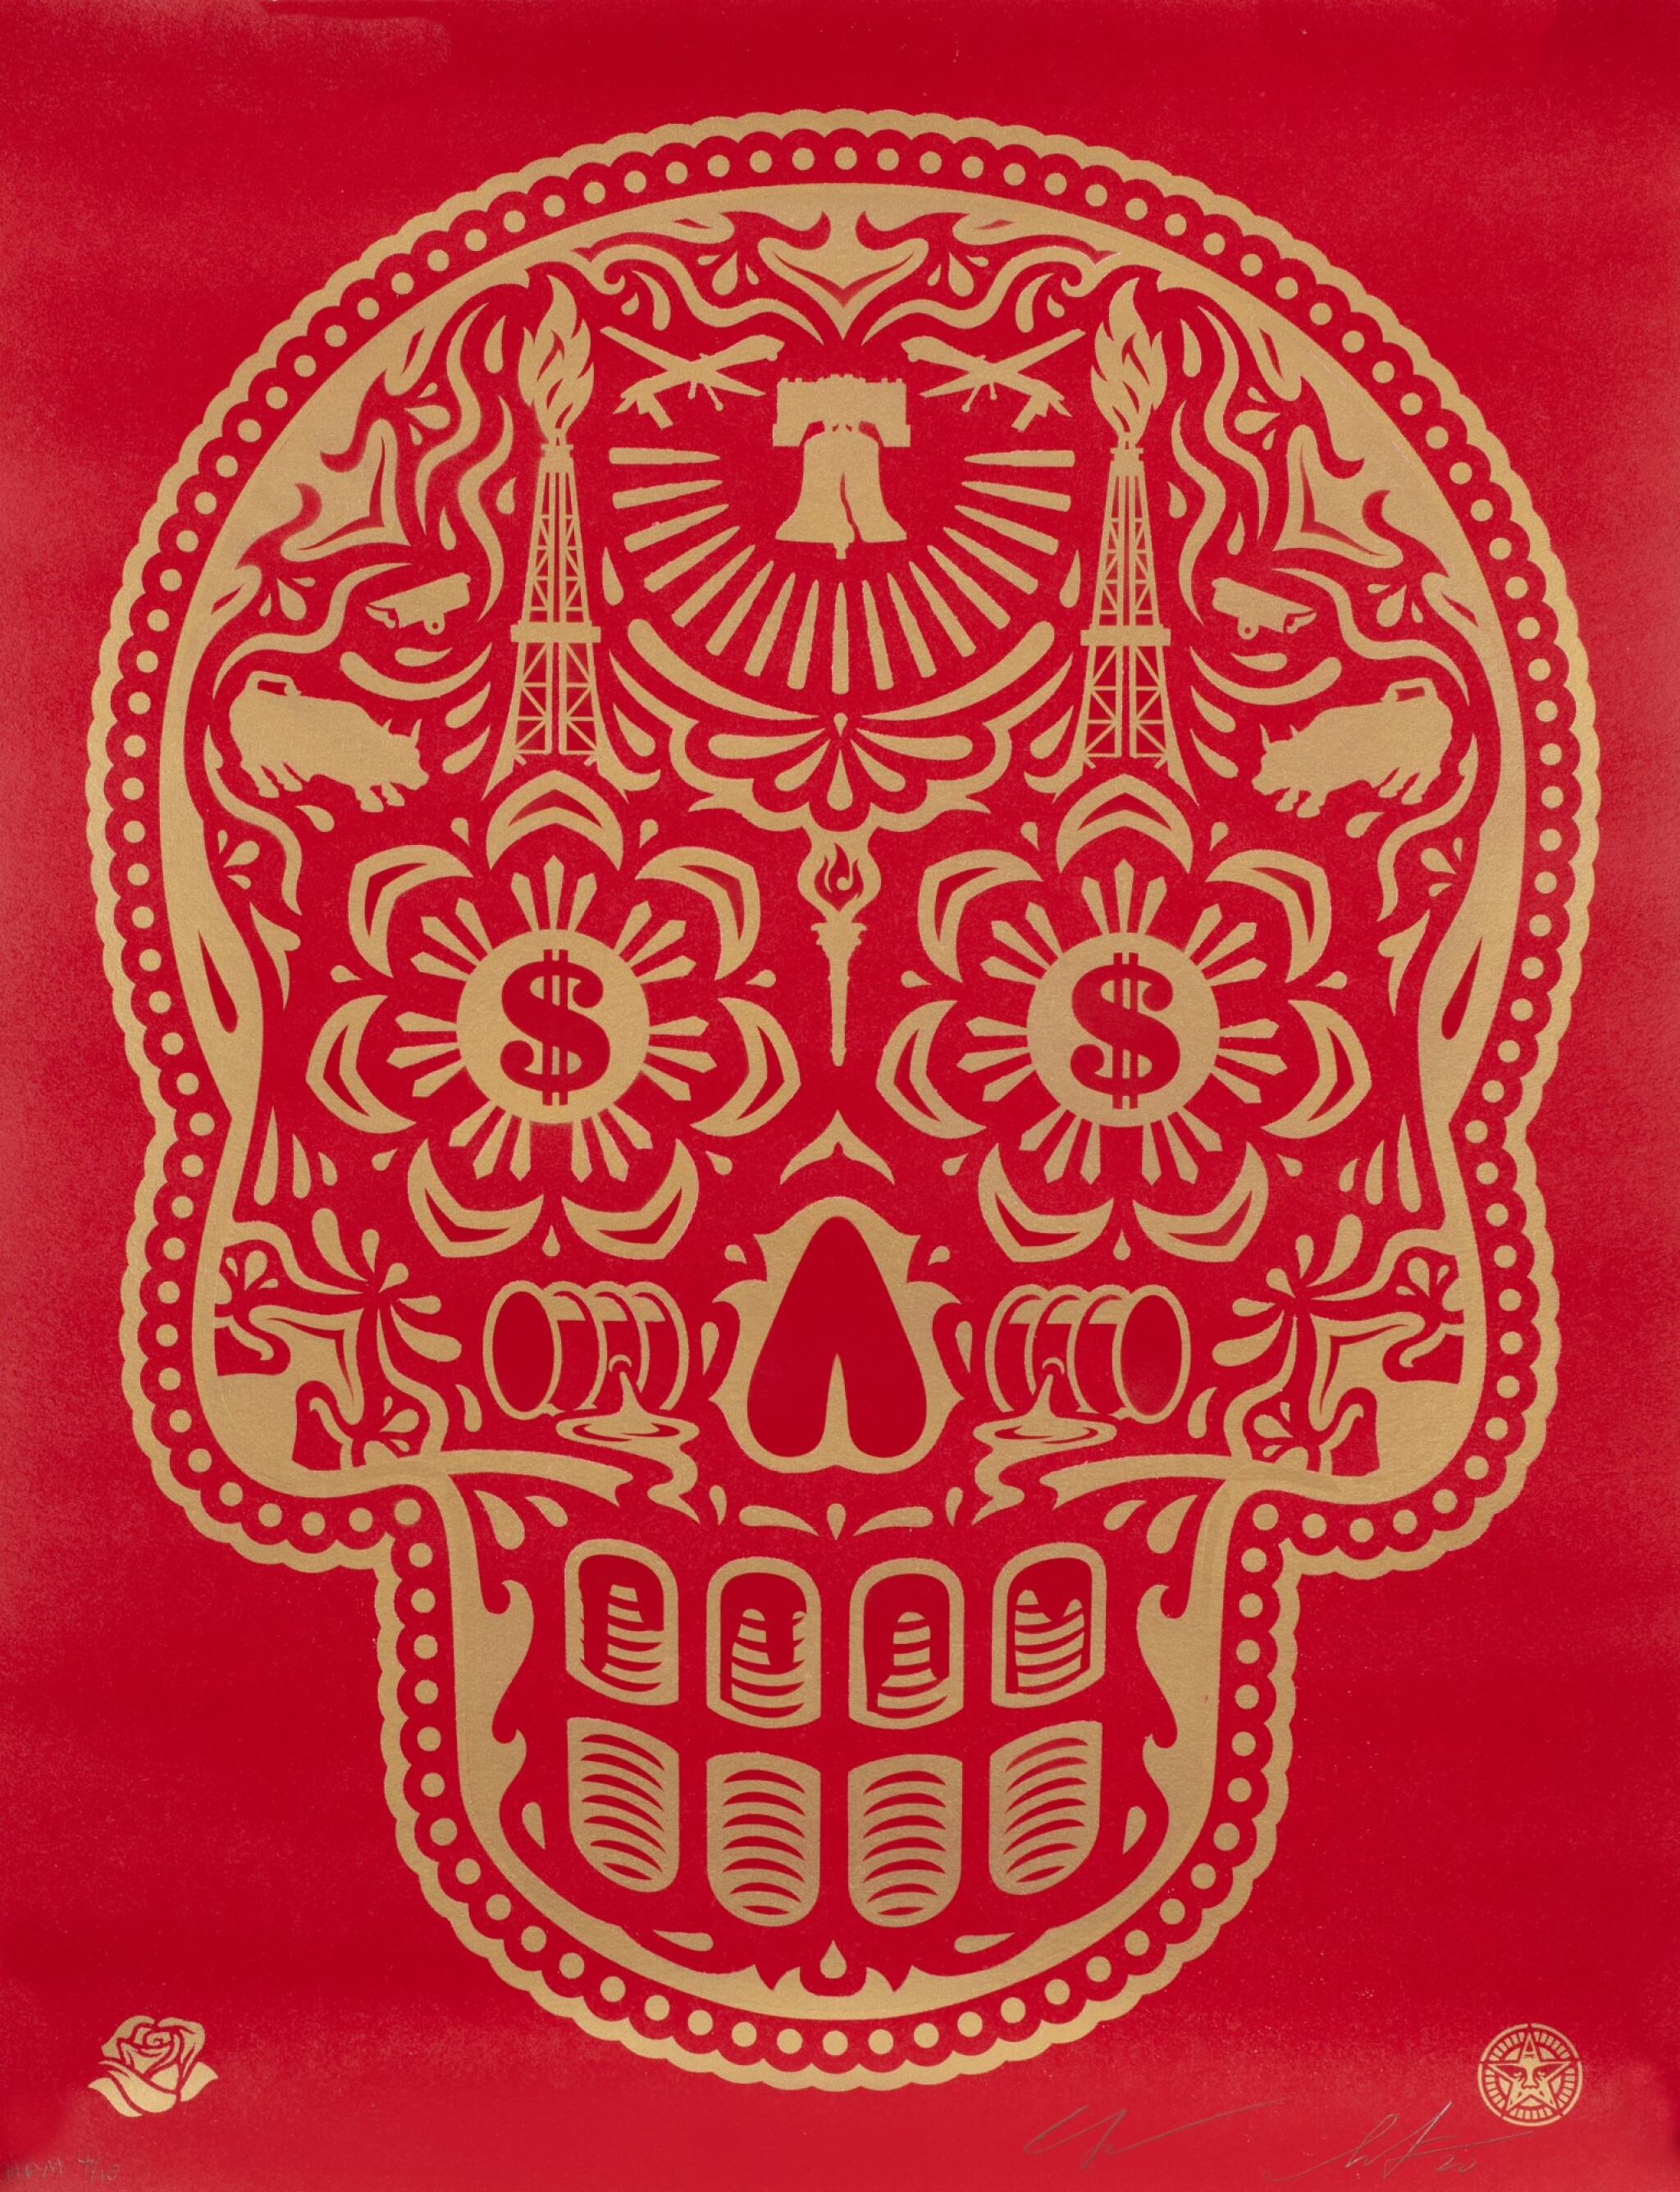 View full screen - View 1 of Lot 553. SHEPARD FAIREY (OBEY GIANT) | POWER & GLORY DAY OF THE DEAD SKULL (RED).